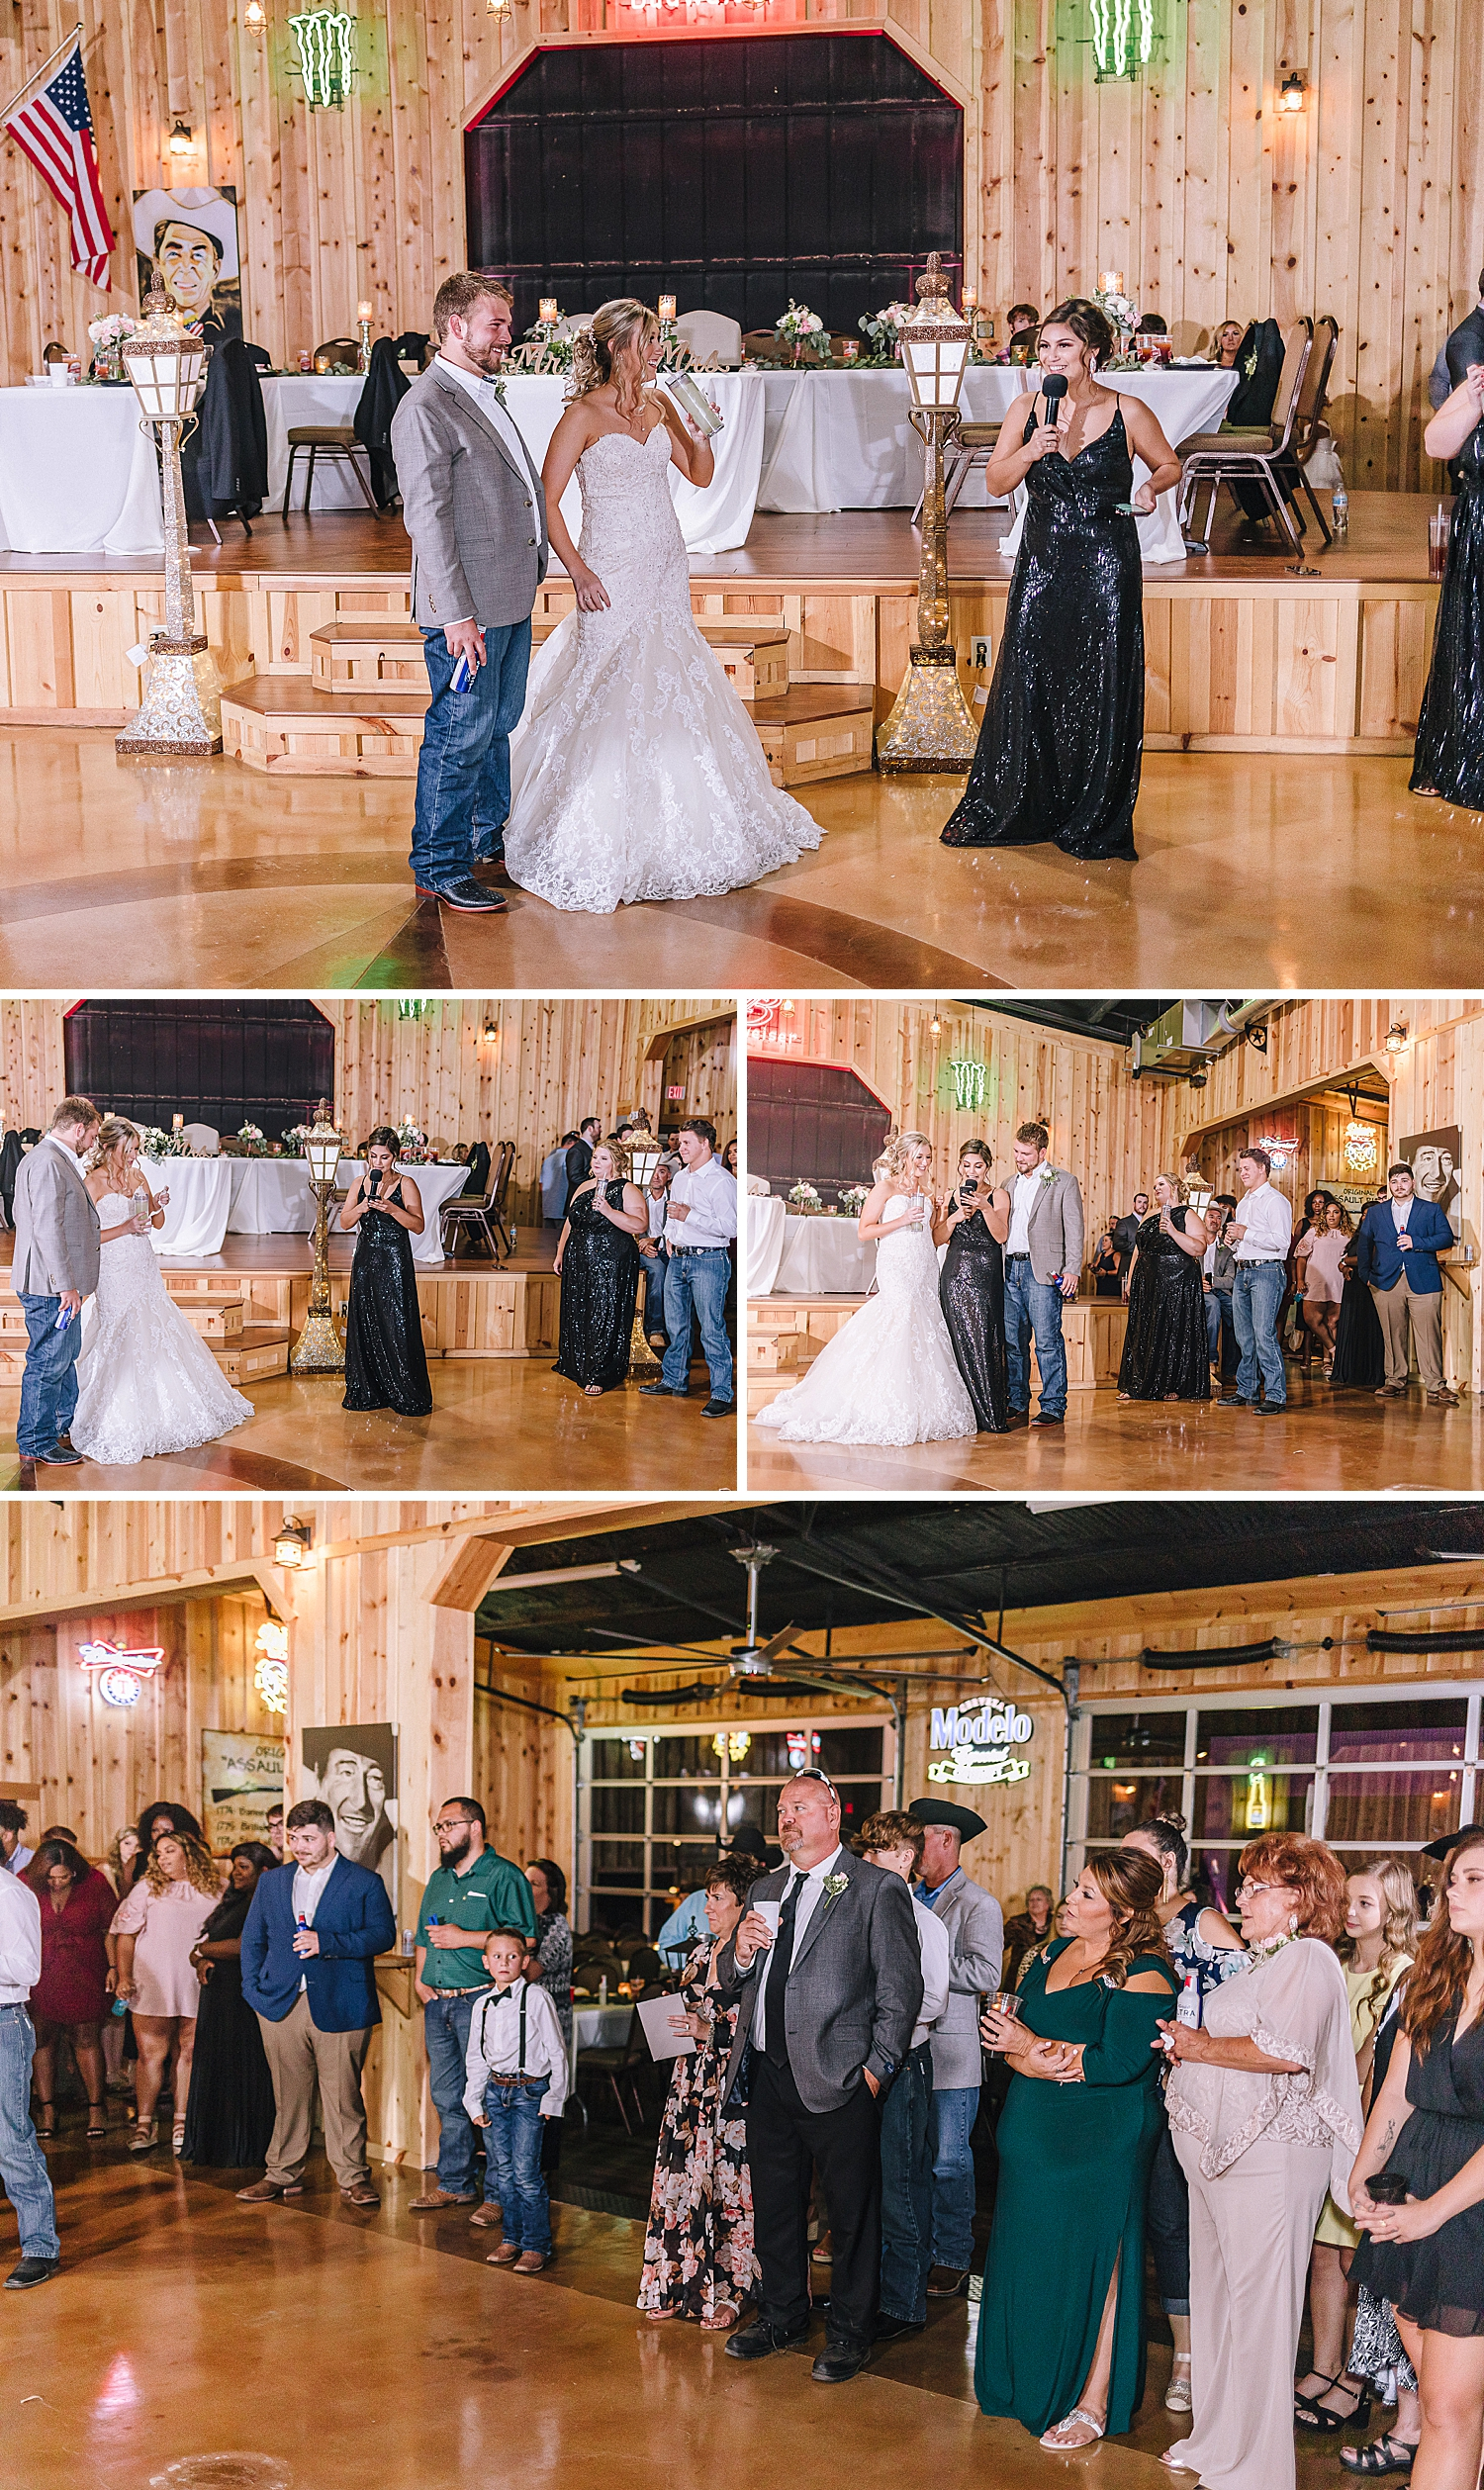 Rackler-Ranch-LaVernia-Texas-Wedding-Carly-Barton-Photography_0133.jpg